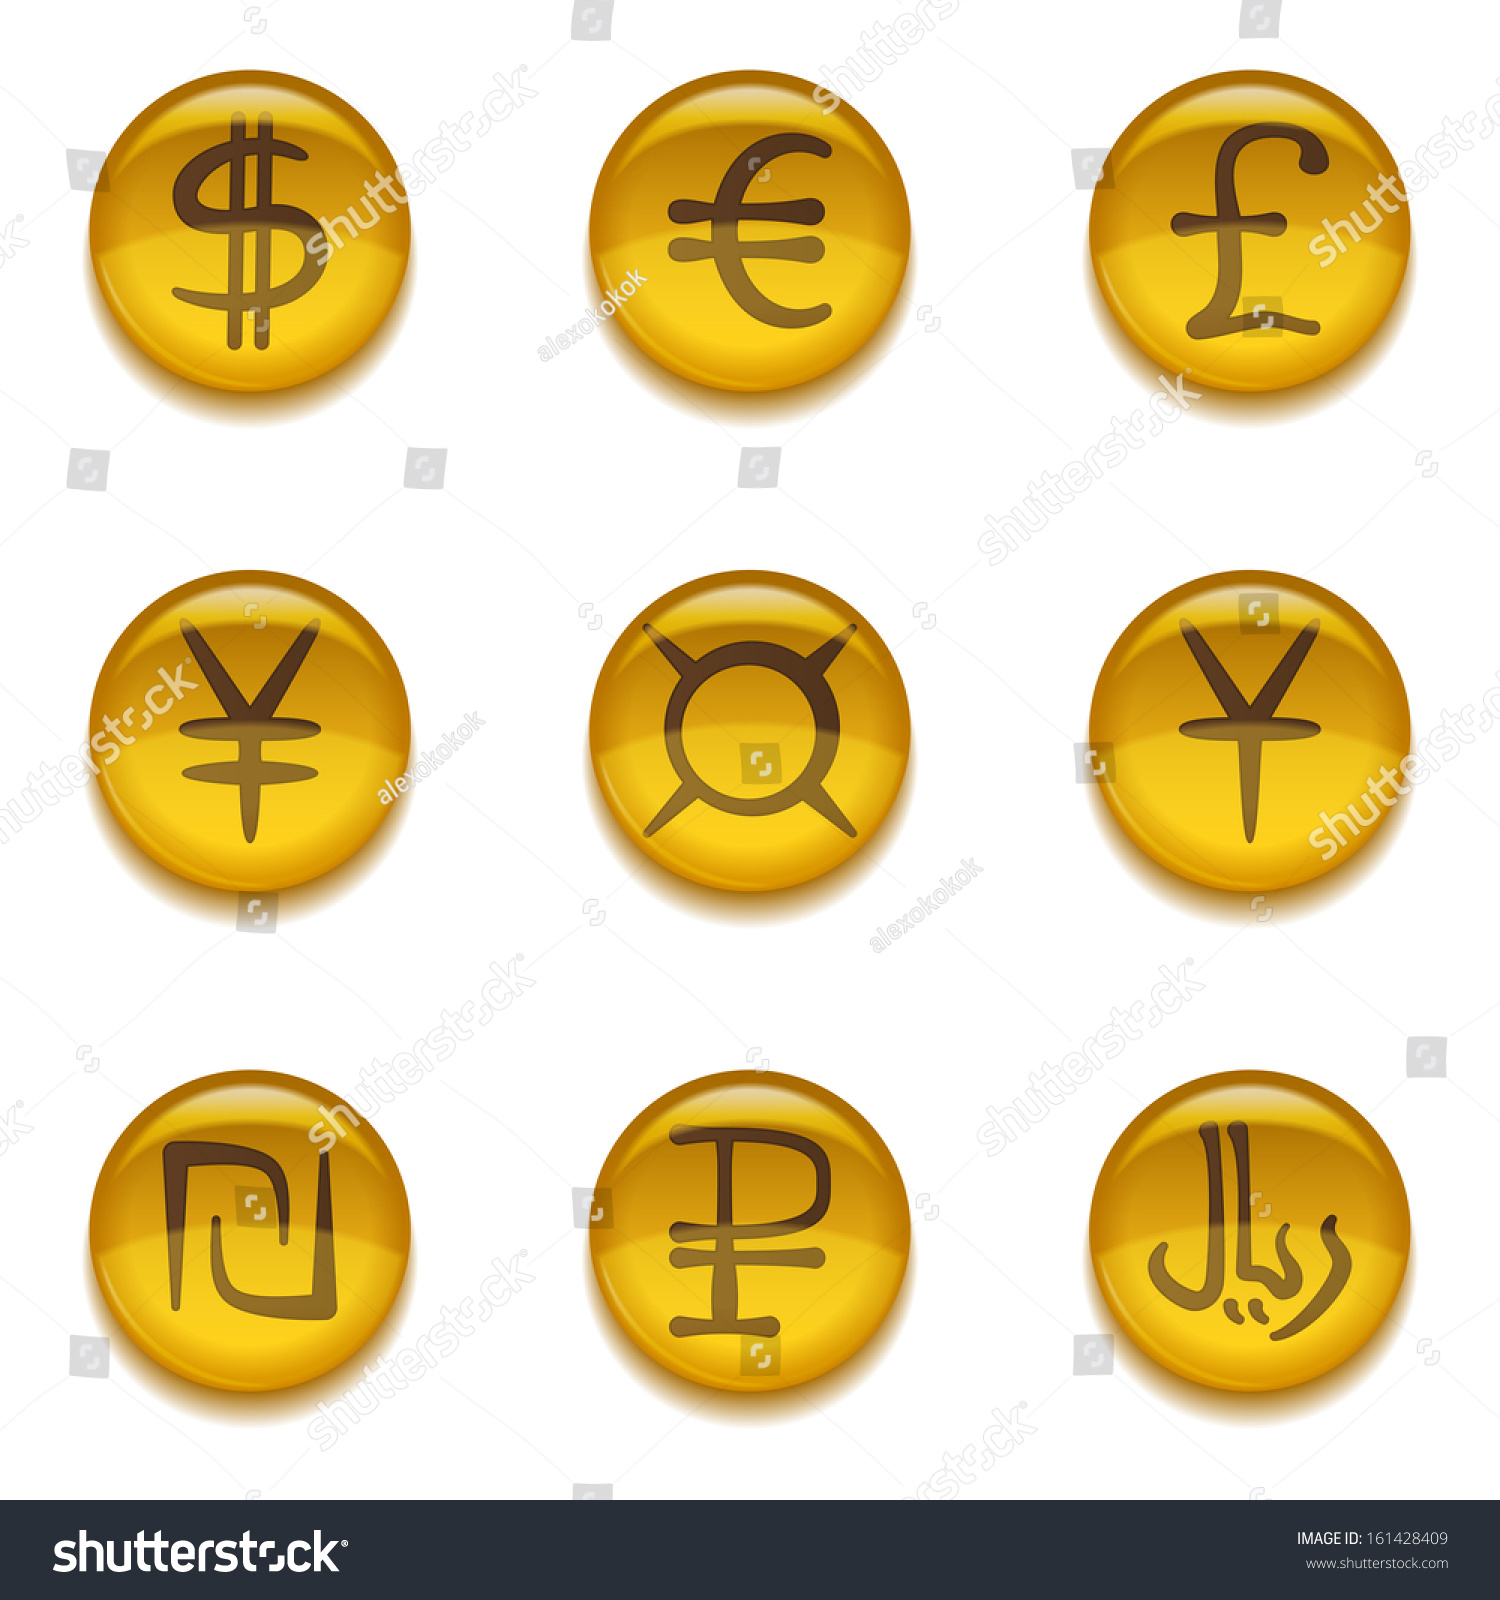 Golden money buttons icons currency signs stock vector 161428409 golden money buttons icons with currency signs set dollar euro pound buycottarizona Choice Image